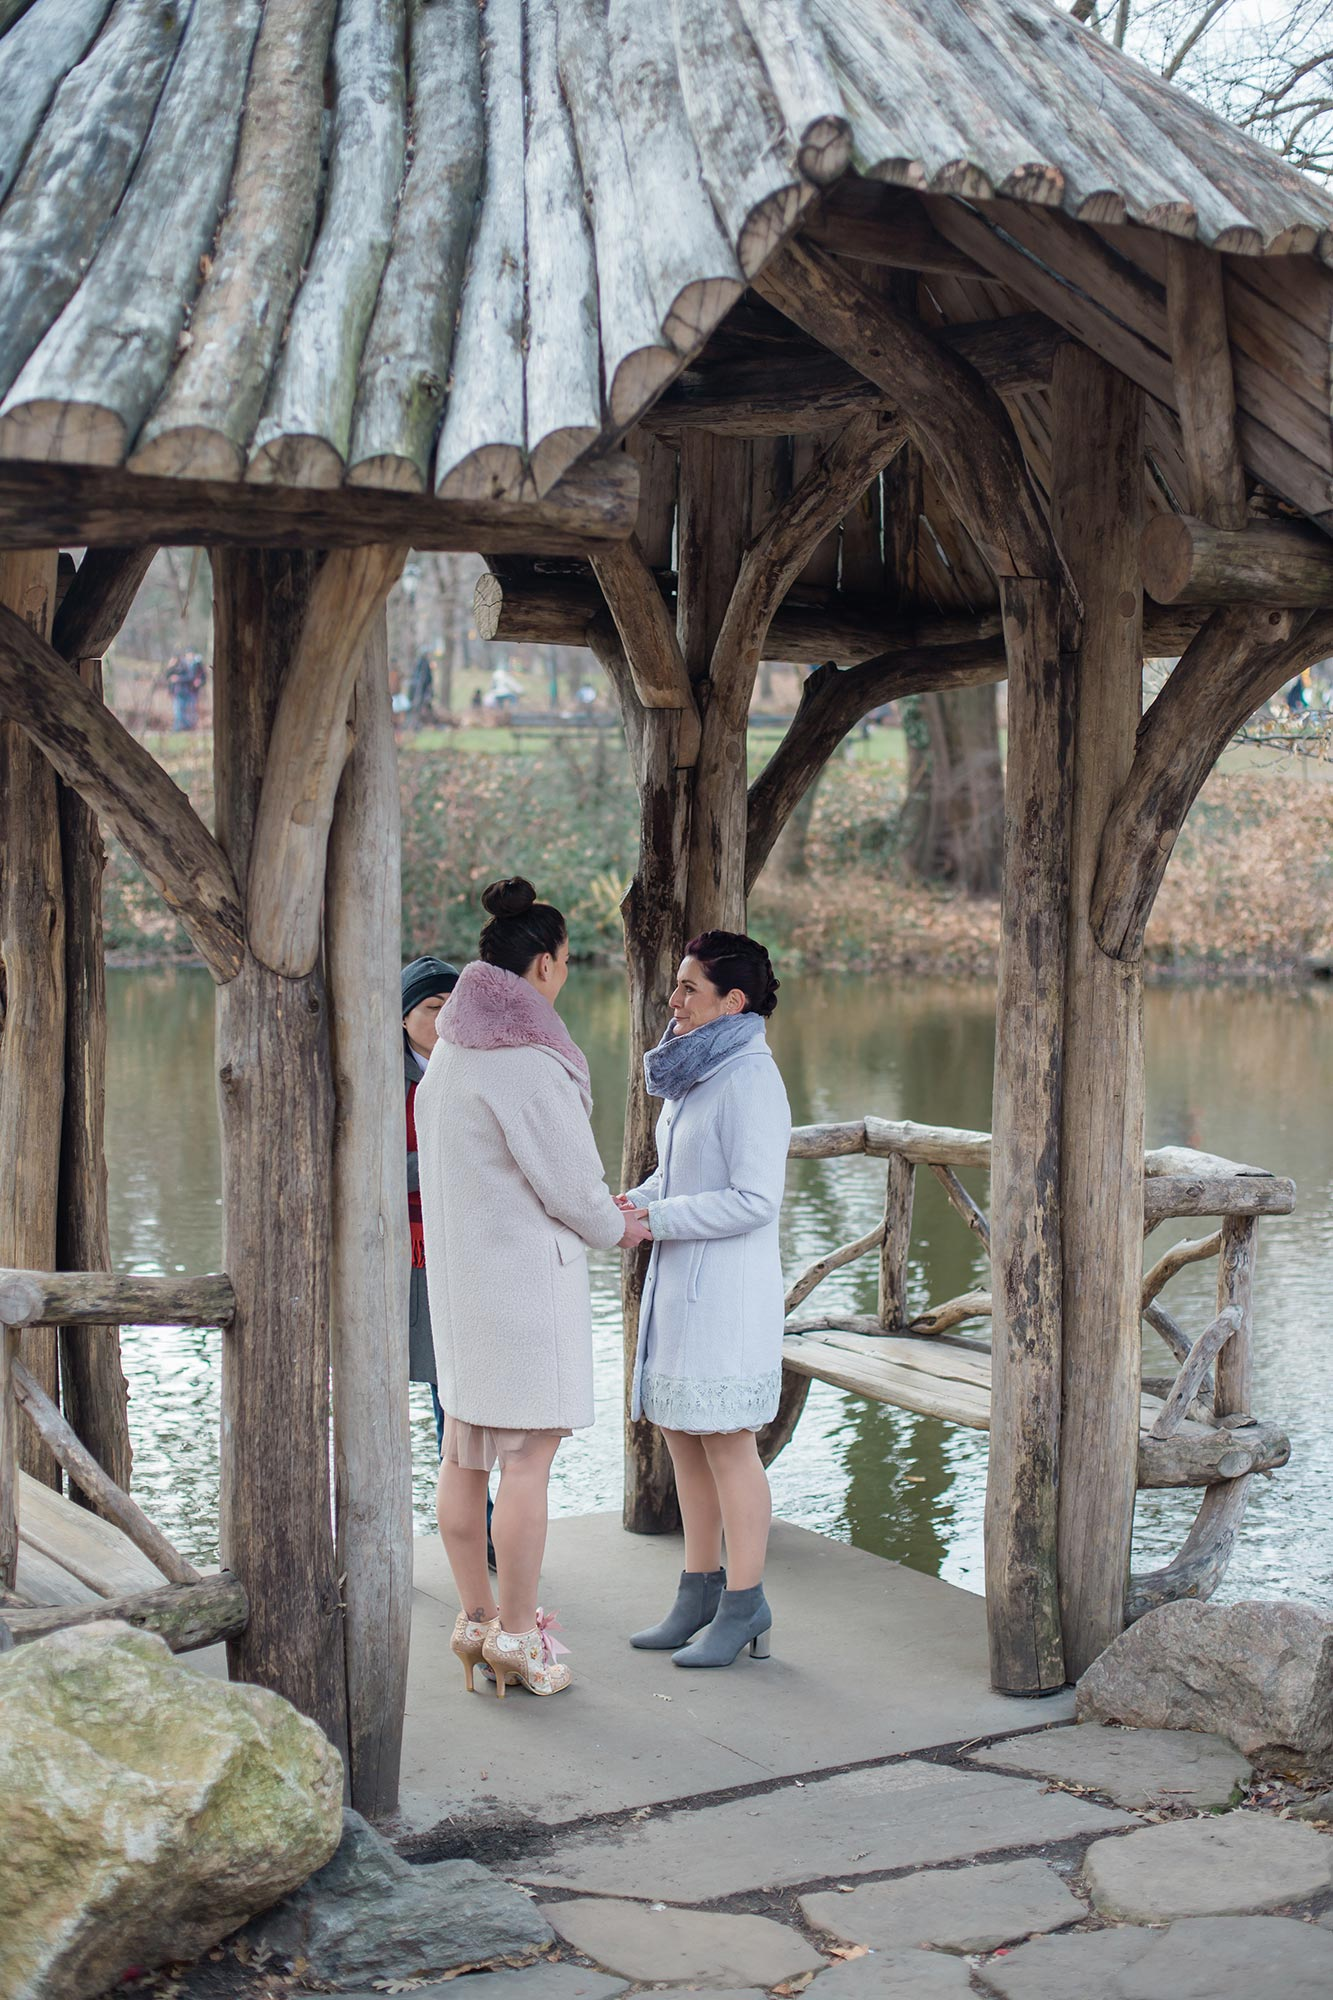 queer irish central park winter elopement kate alison photography couple and officiant under log shelter by river for ceremony